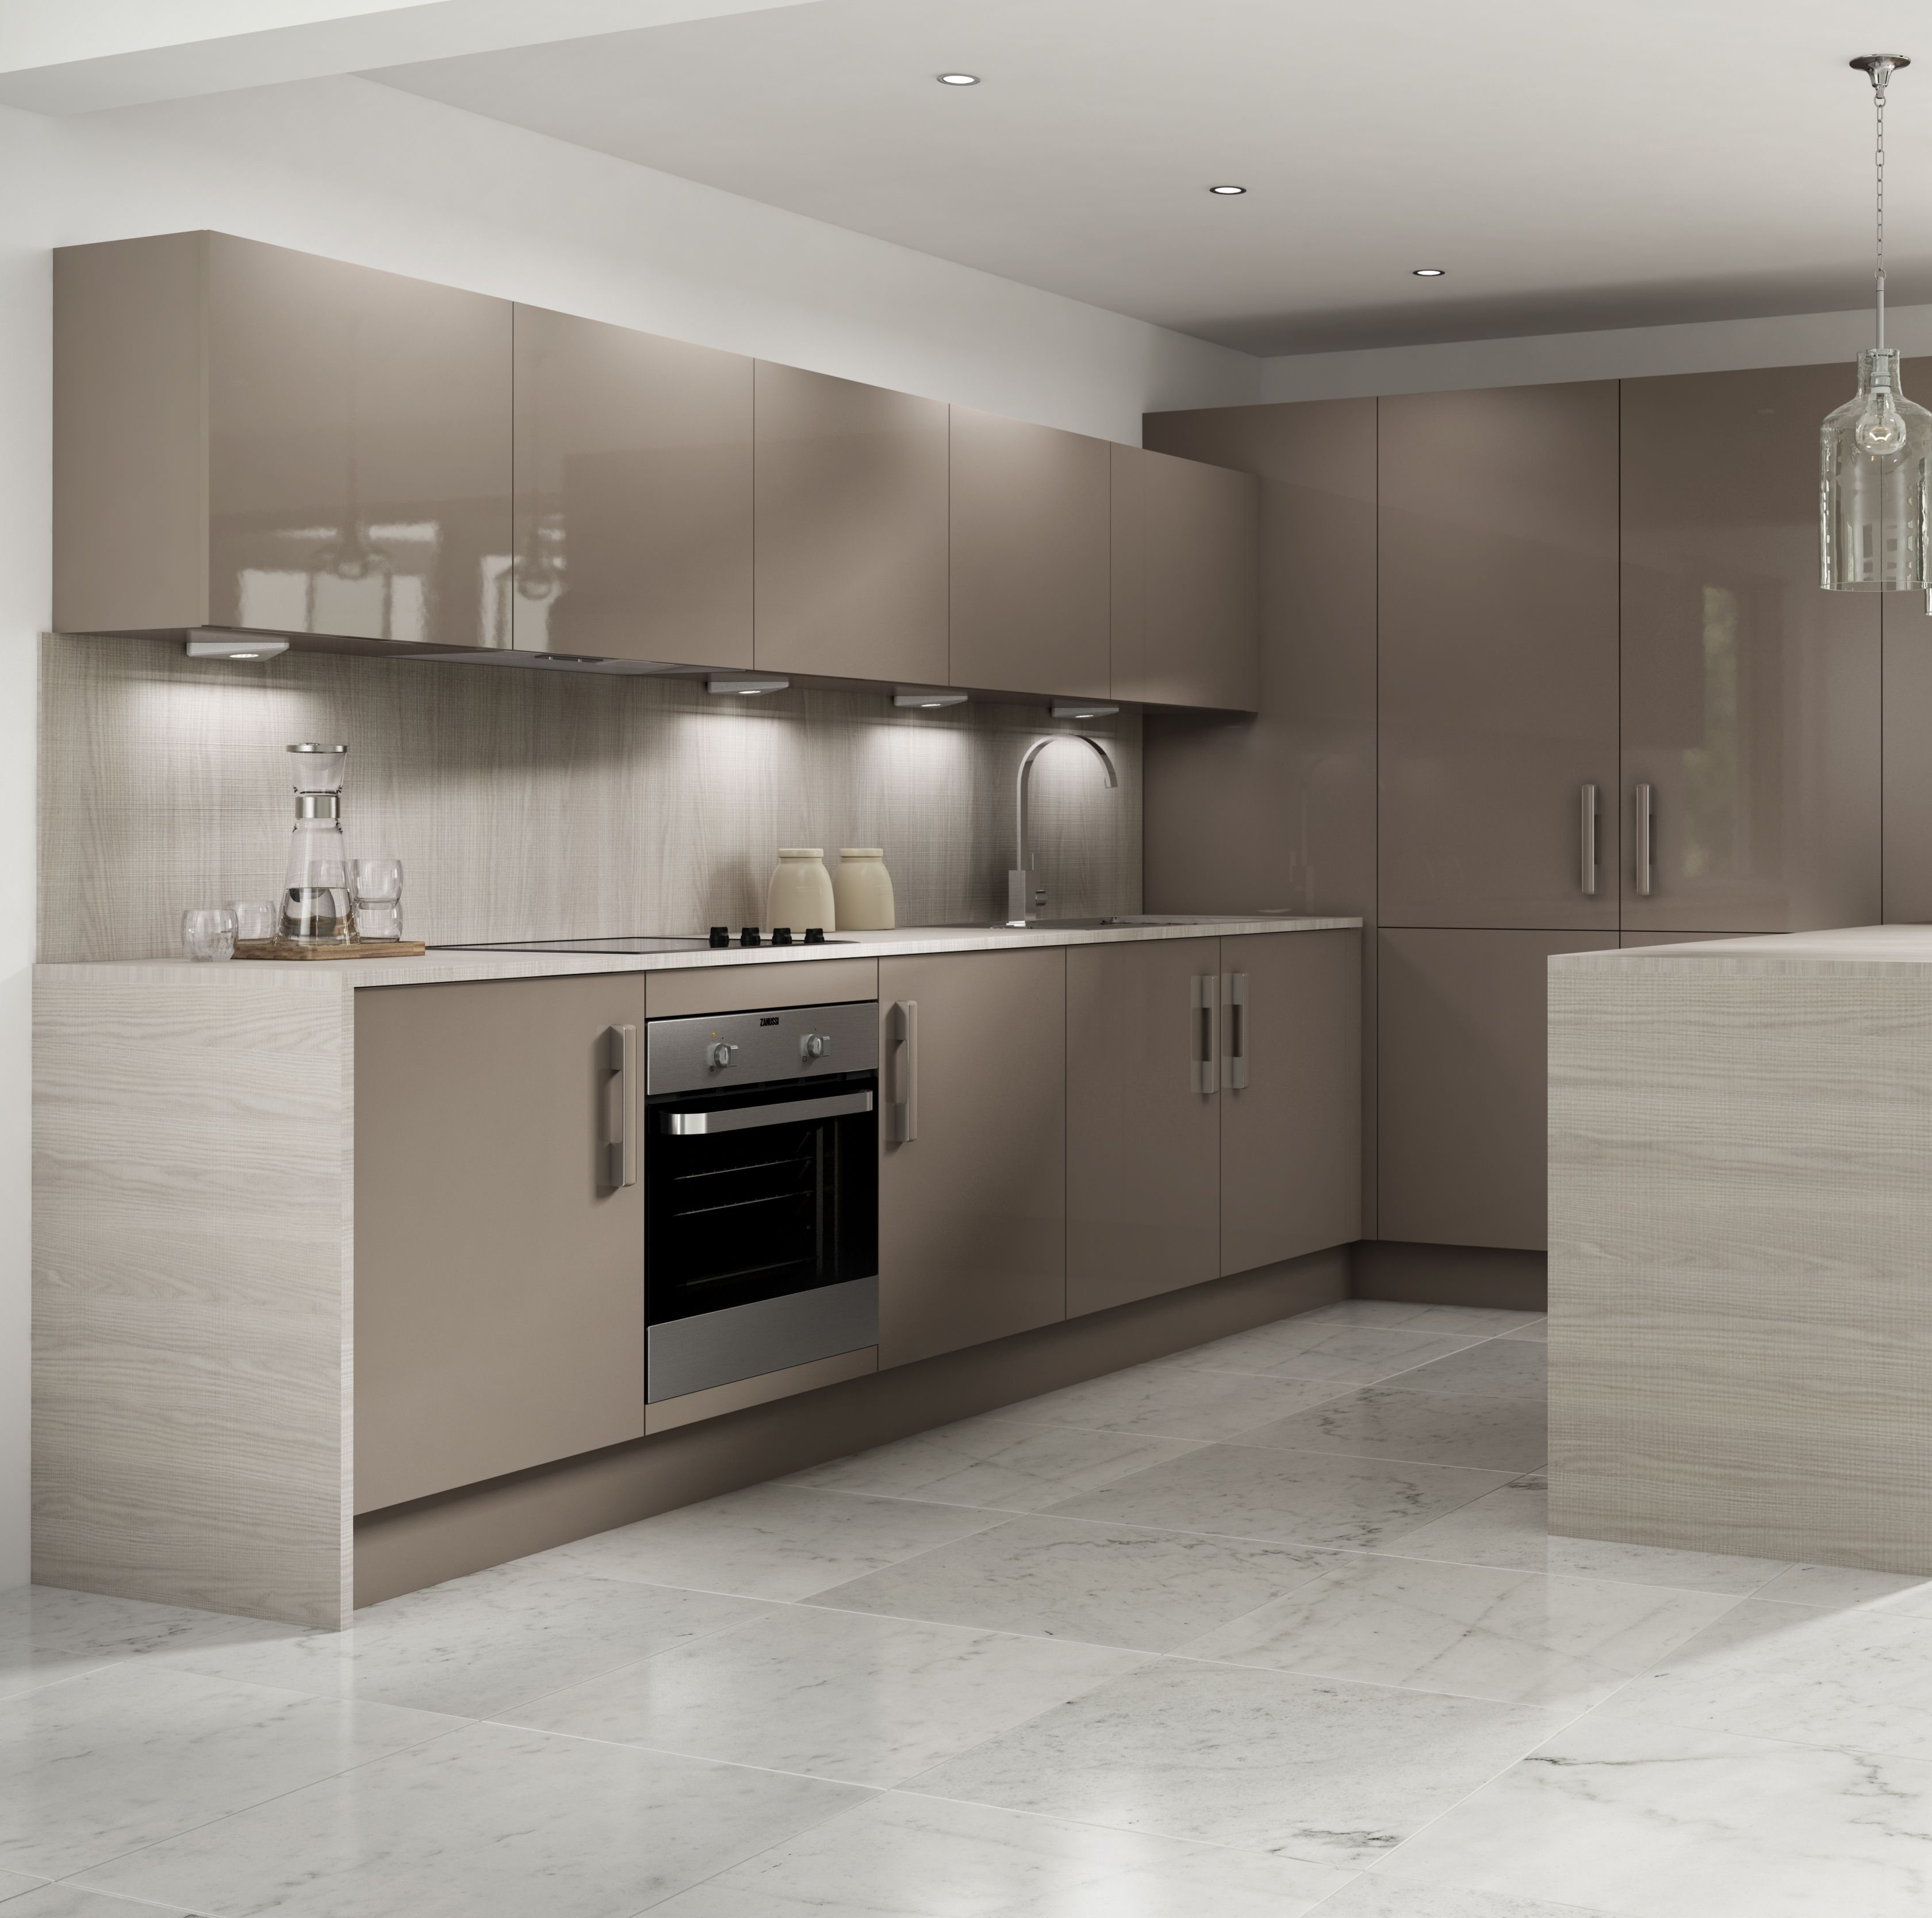 Woodbury Basalt Buildbase Kitchen Pinterest Kitchens And House # Muebles Tipo Wimpy